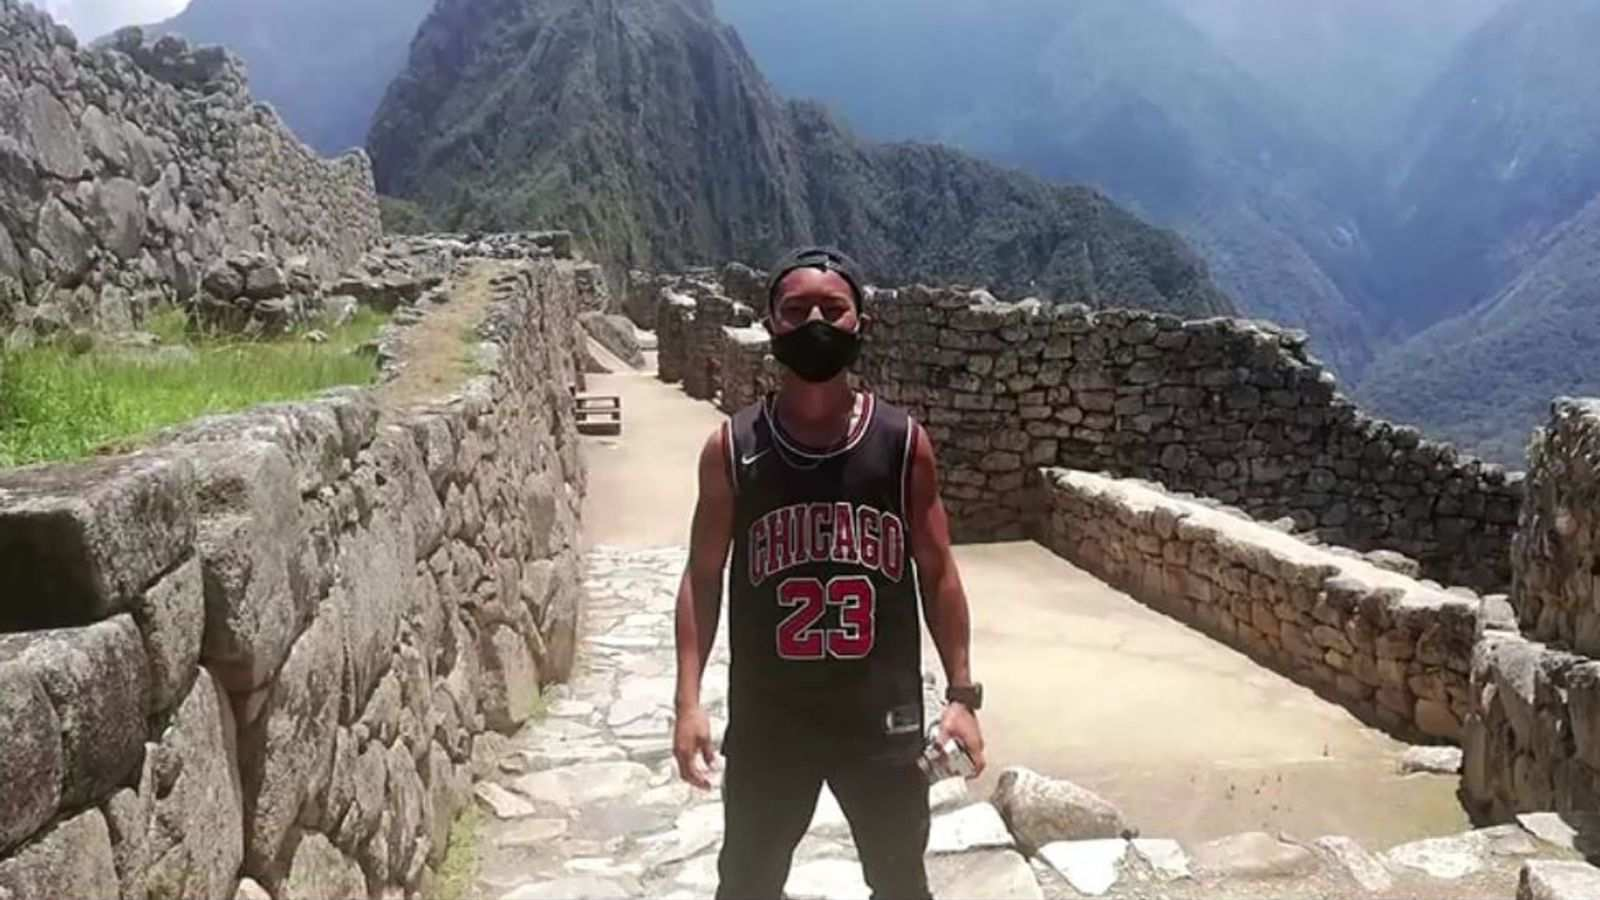 Peru Opens Machu Picchu for Single Tourist Left Stranded by Coronavirus Pandemic